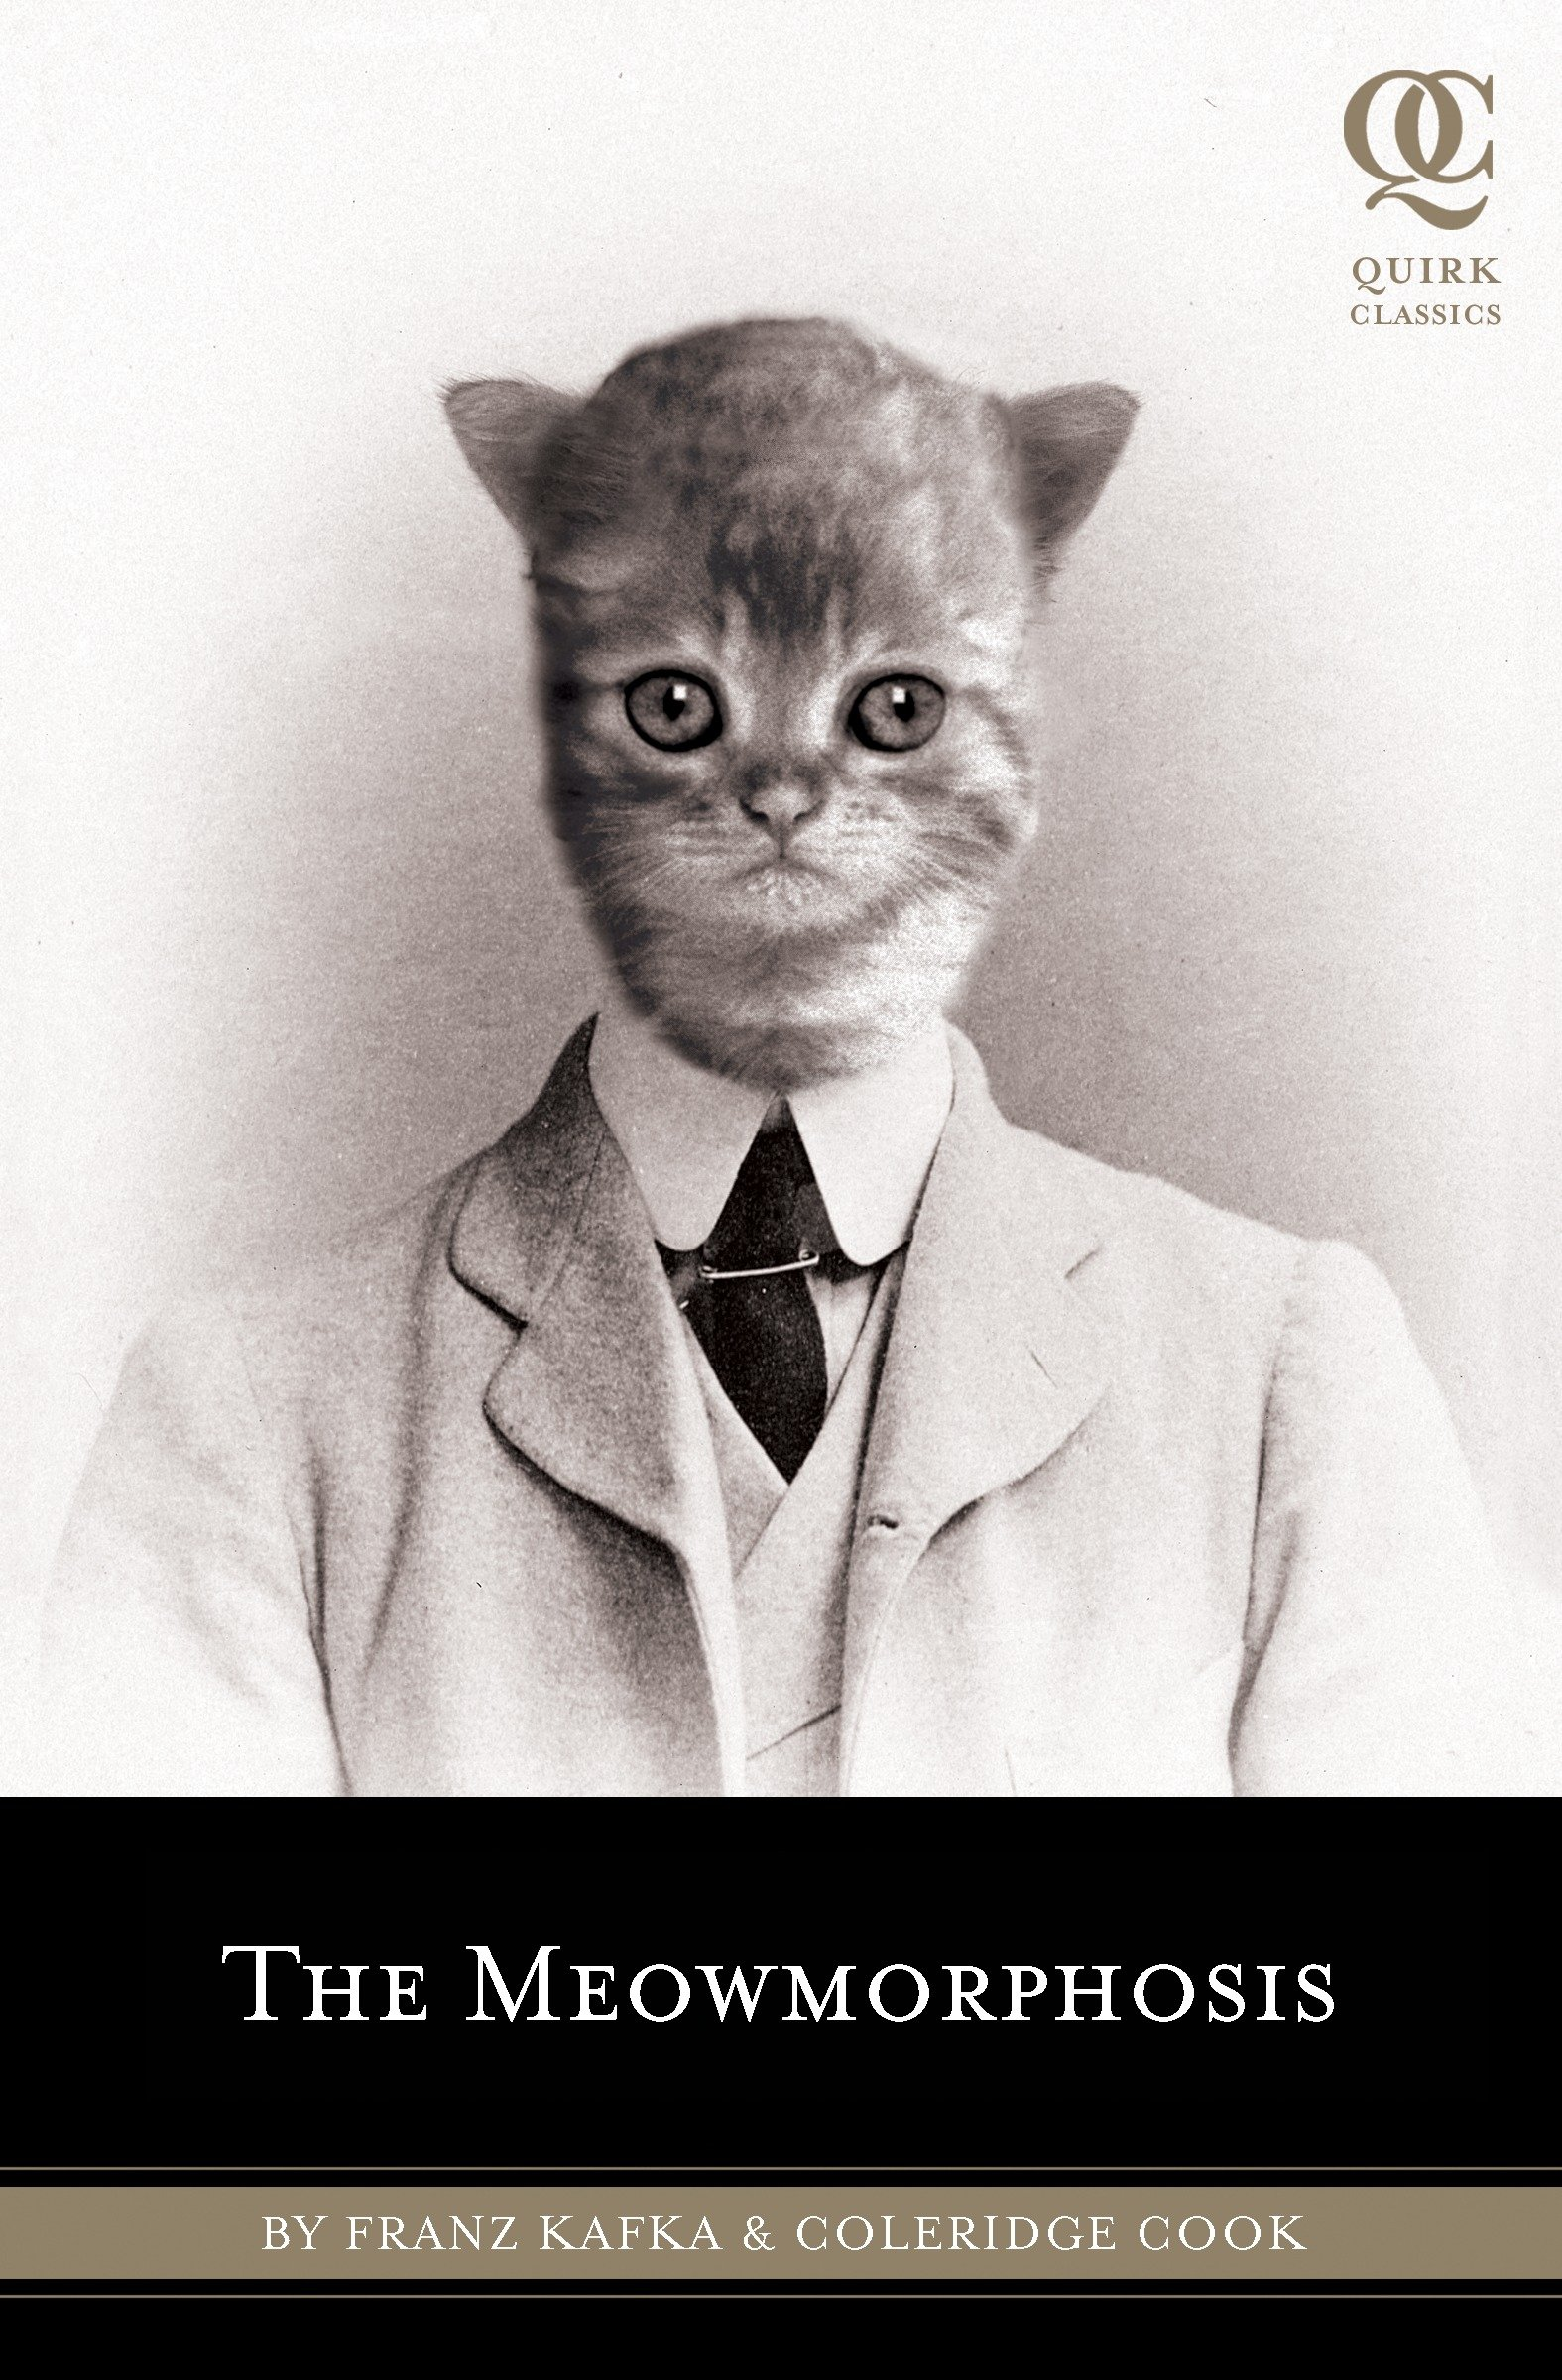 Cover Image of The Meowmorphosis